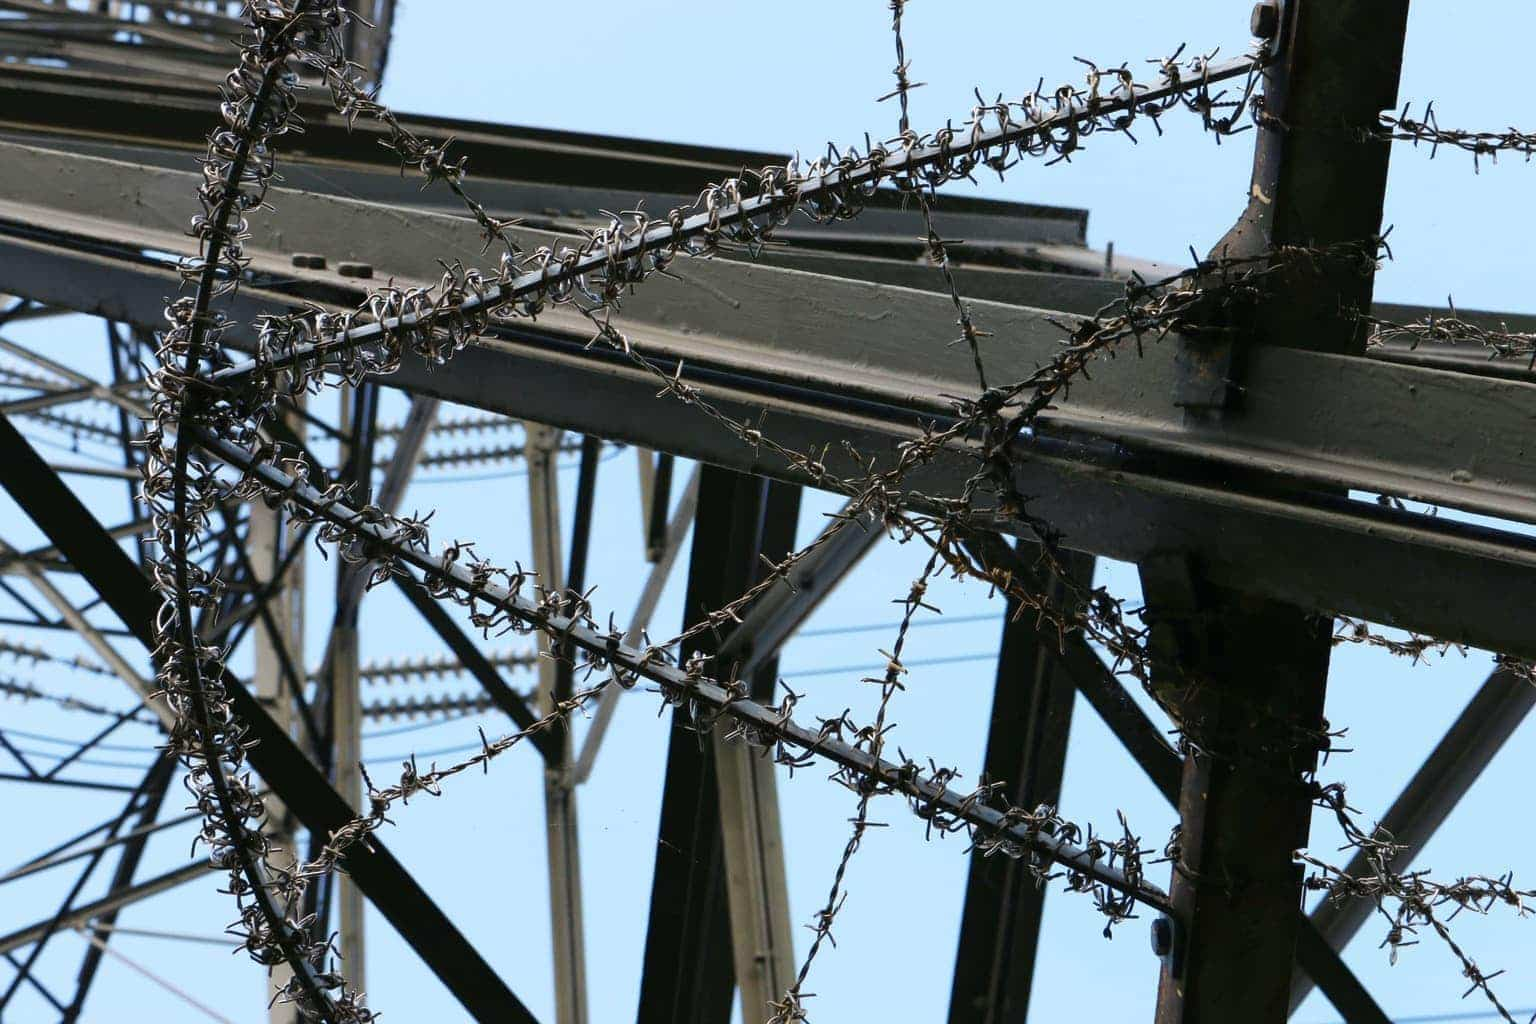 This shot is a close up of an electricity pilon taken by Dpi Photography.